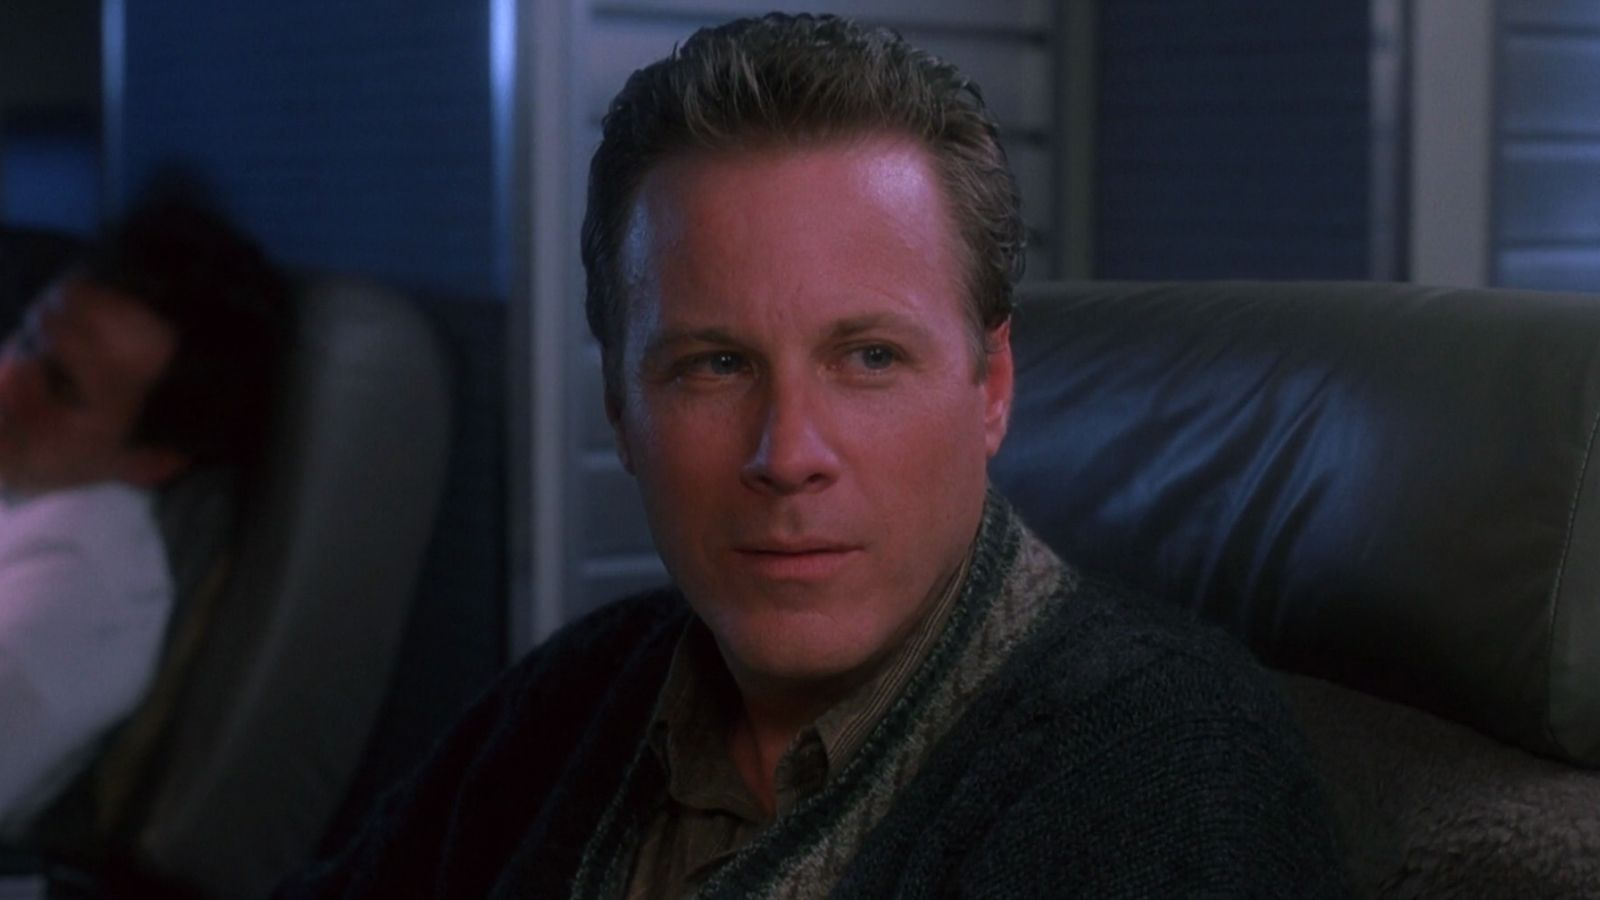 Peter McCallister in Home Alone.